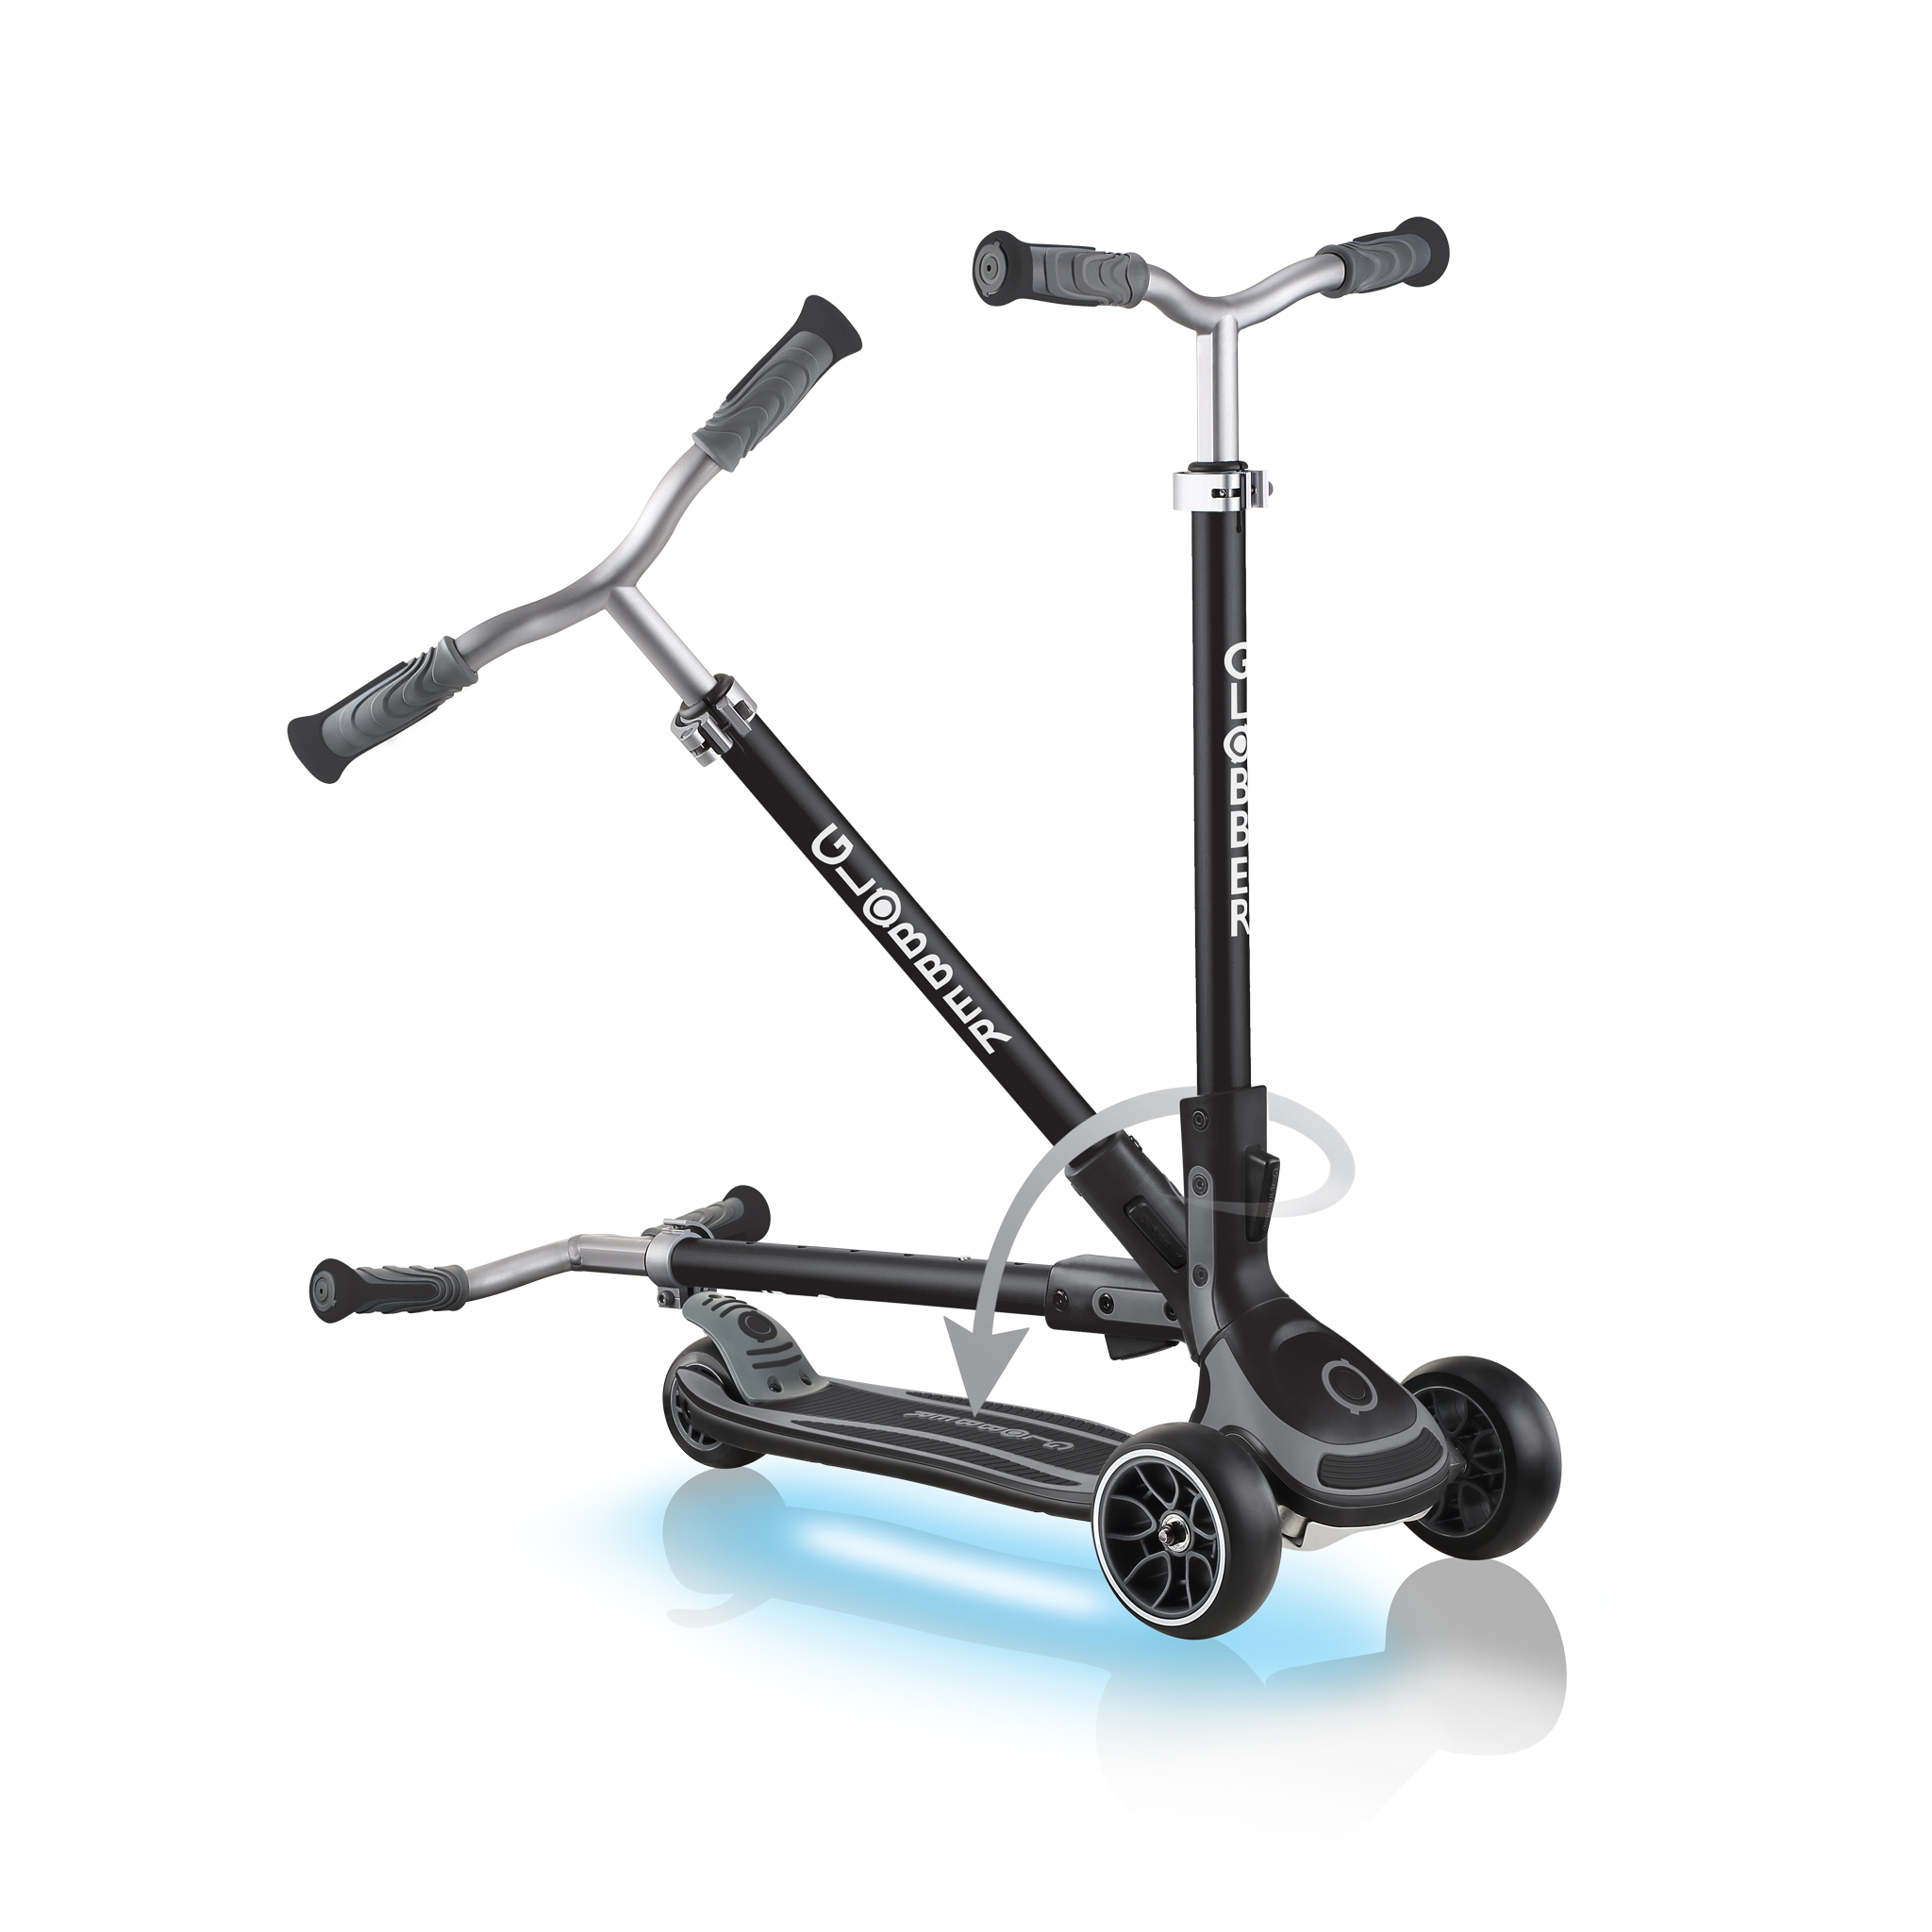 ULTIMUM-LIGHTS-folding-scooter-for-kids-and-teens-black 2